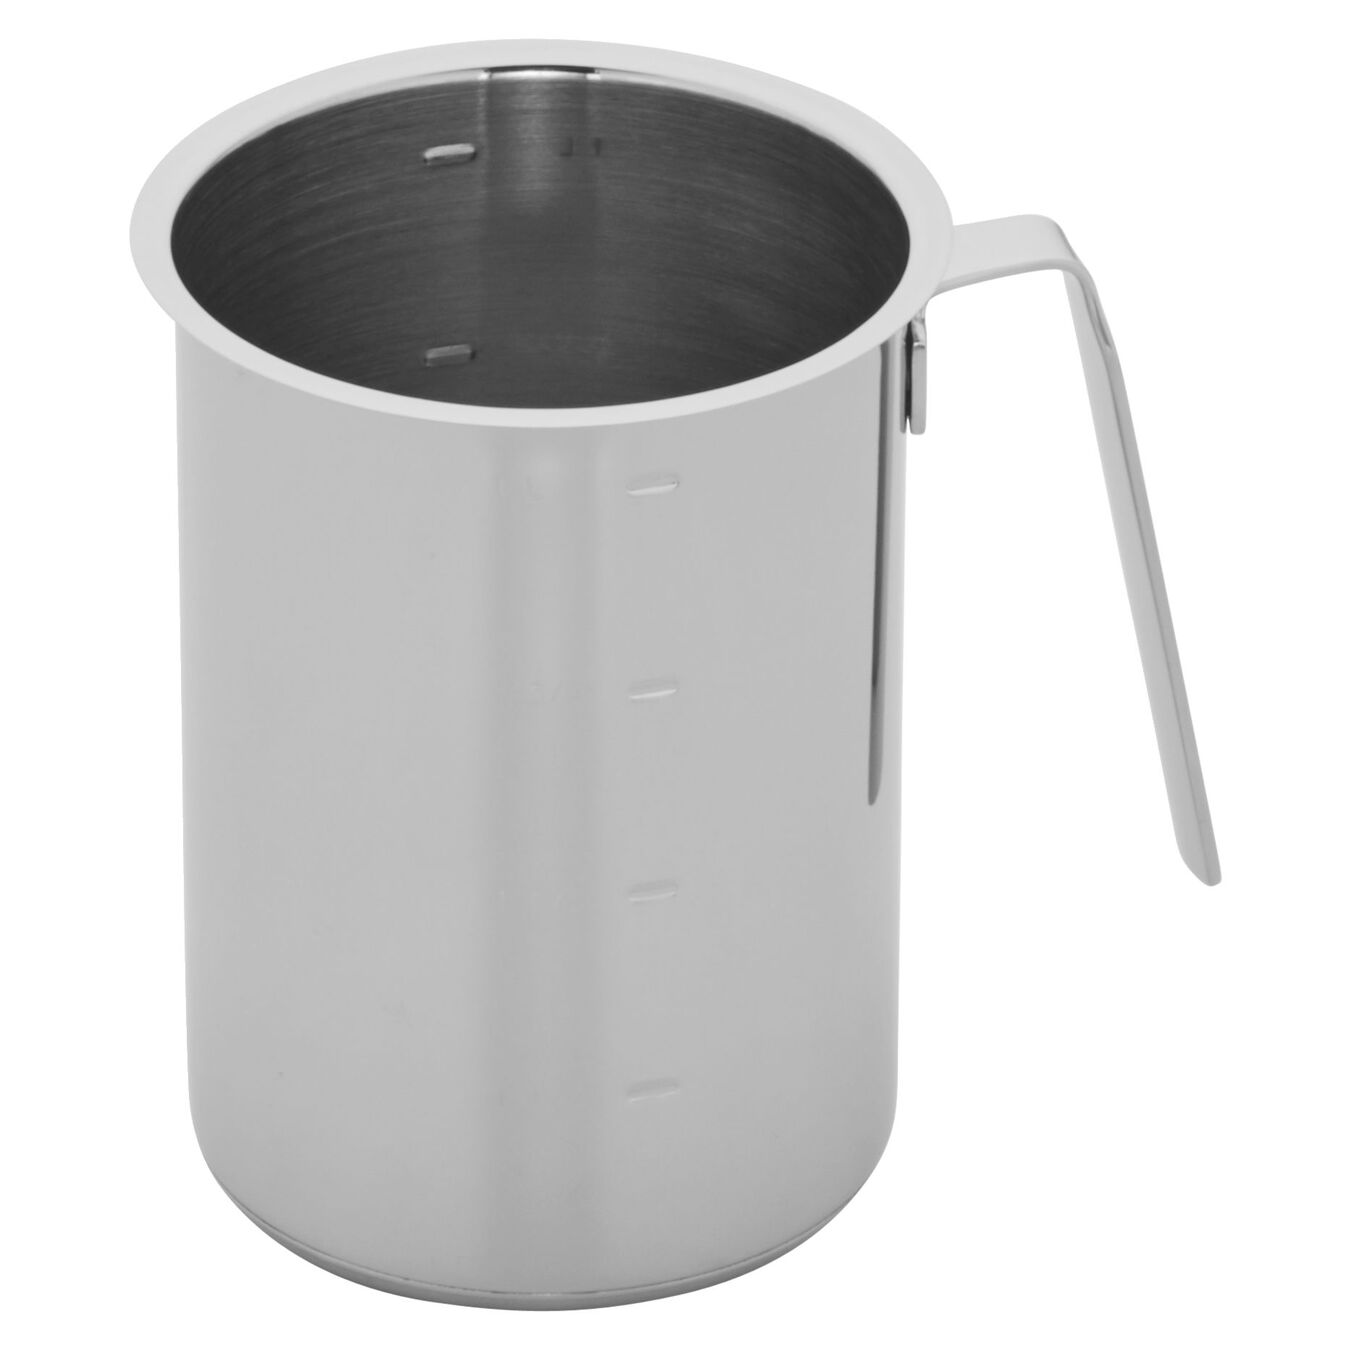 1.2-qt Stainless Steel Tall Saucepan,,large 2